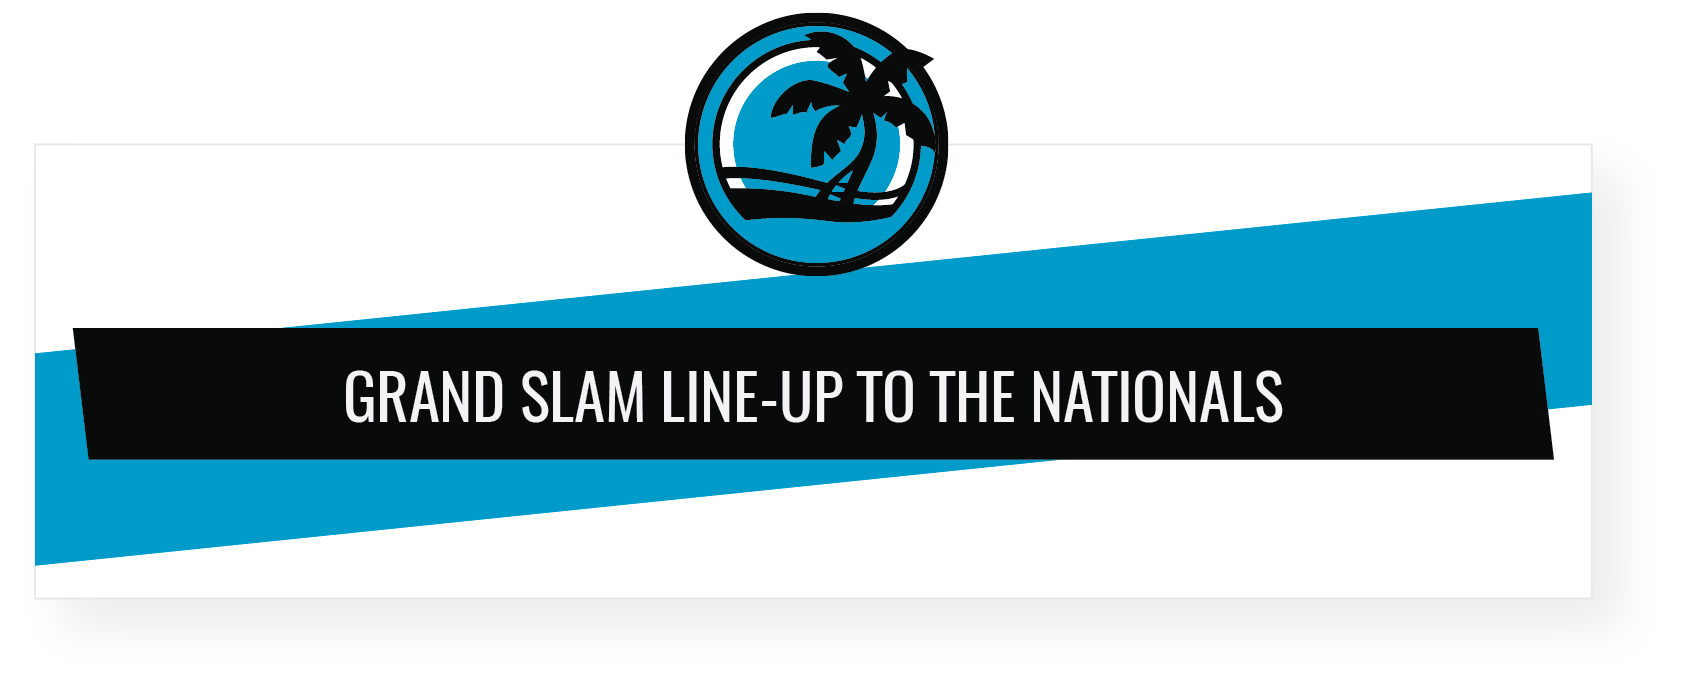 Youth Baseball Nationals Myrtle Beach Tournament Grand Slam Line-Up